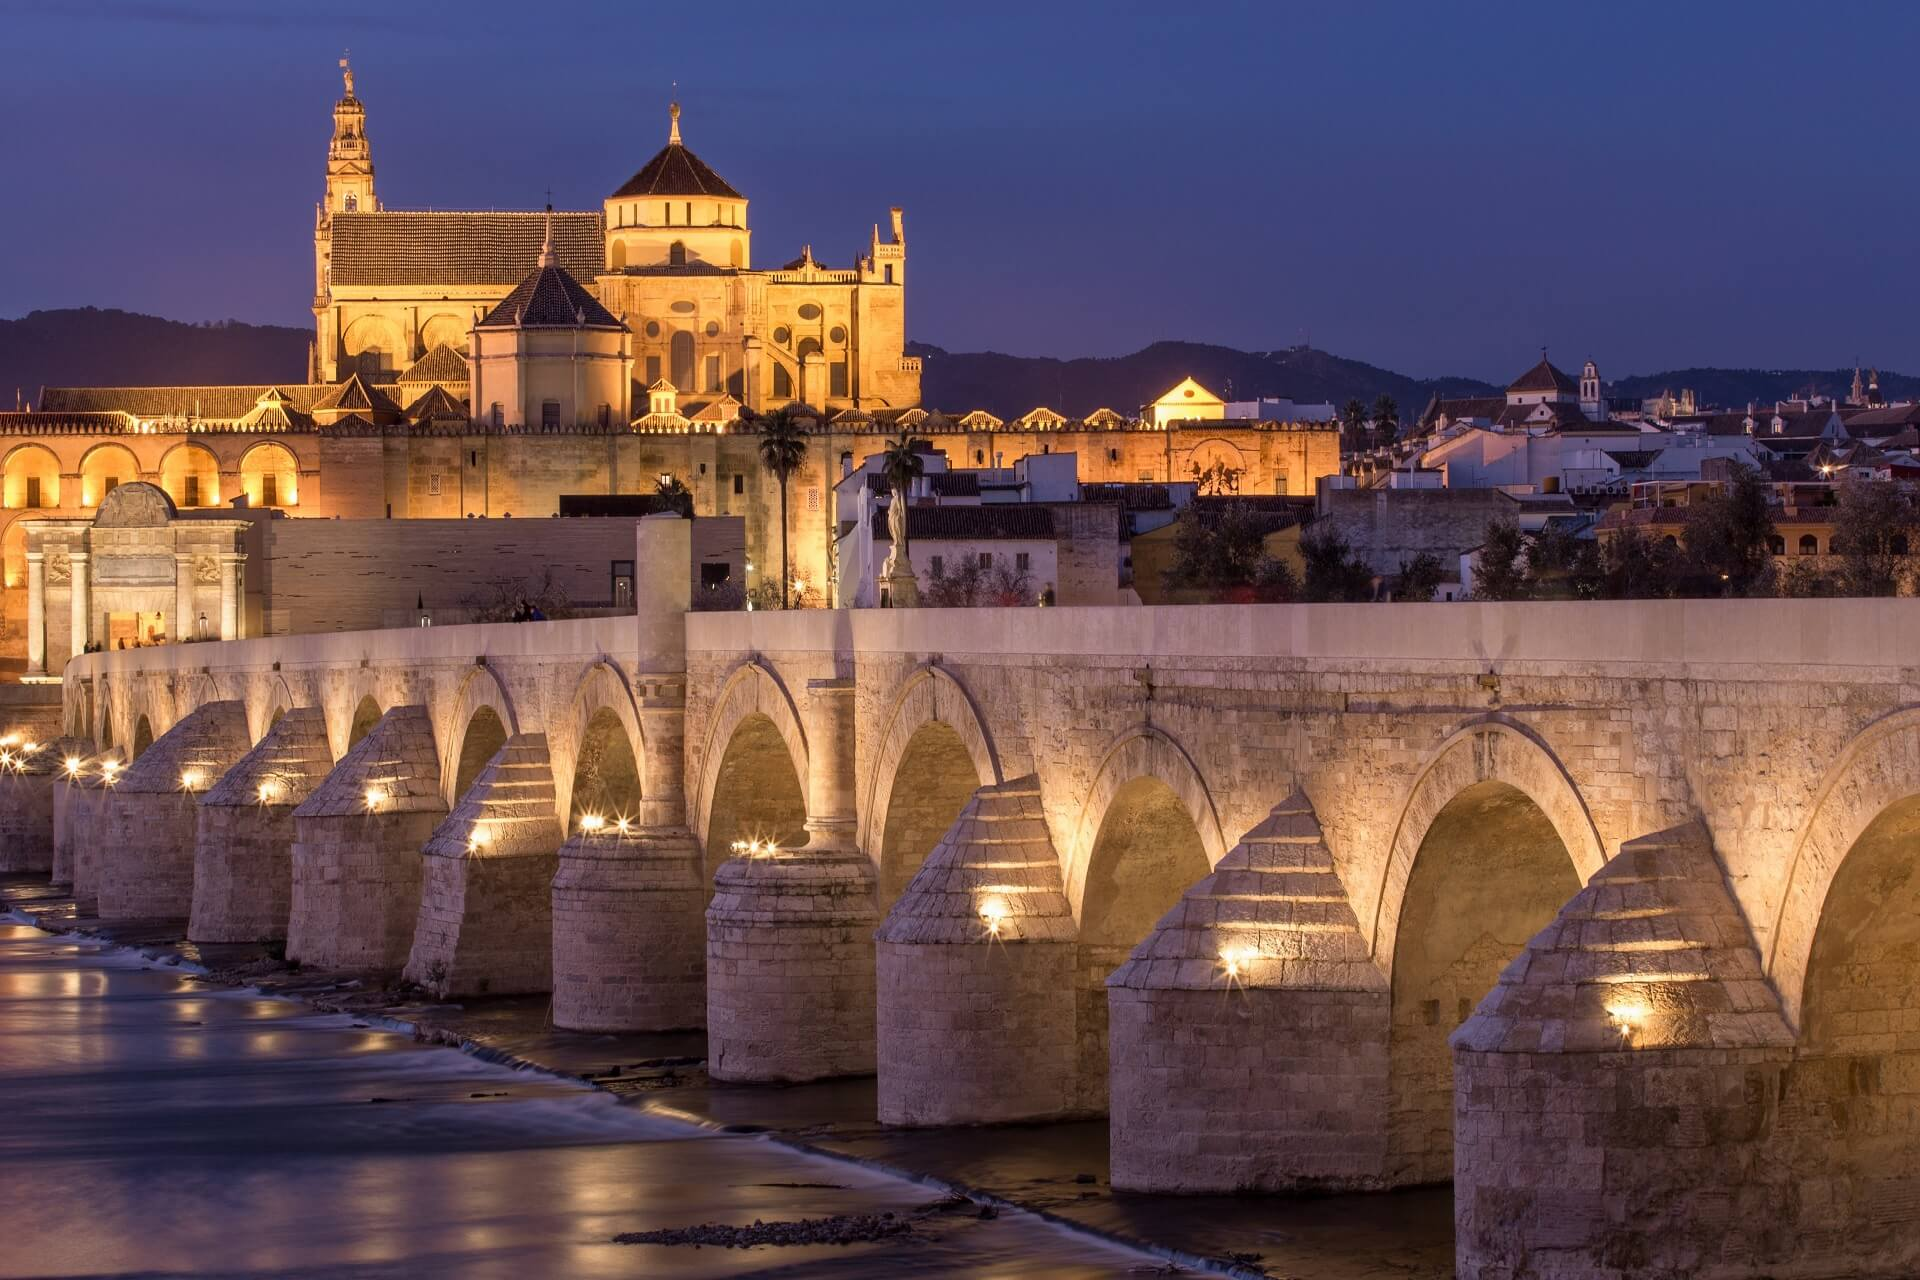 The Great Mosque in Cordoba, Spain